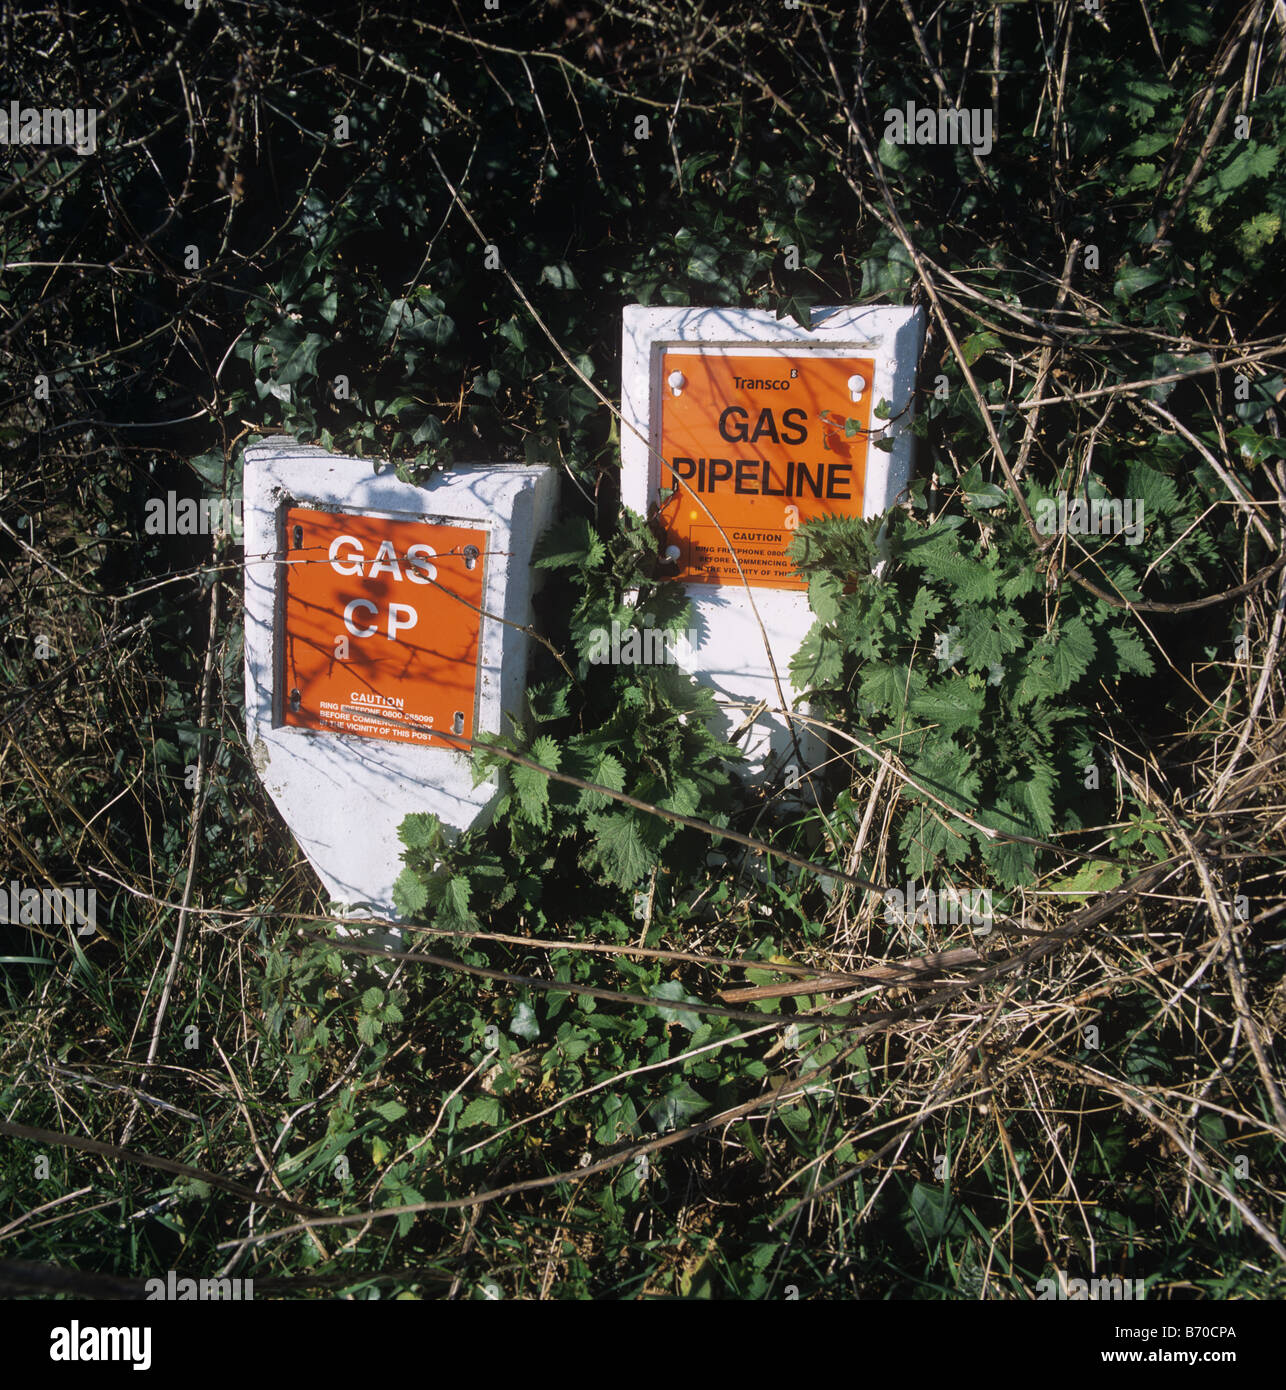 Gas pipeline markers on short concrete posts placed in Devon hedgerow - Stock Image